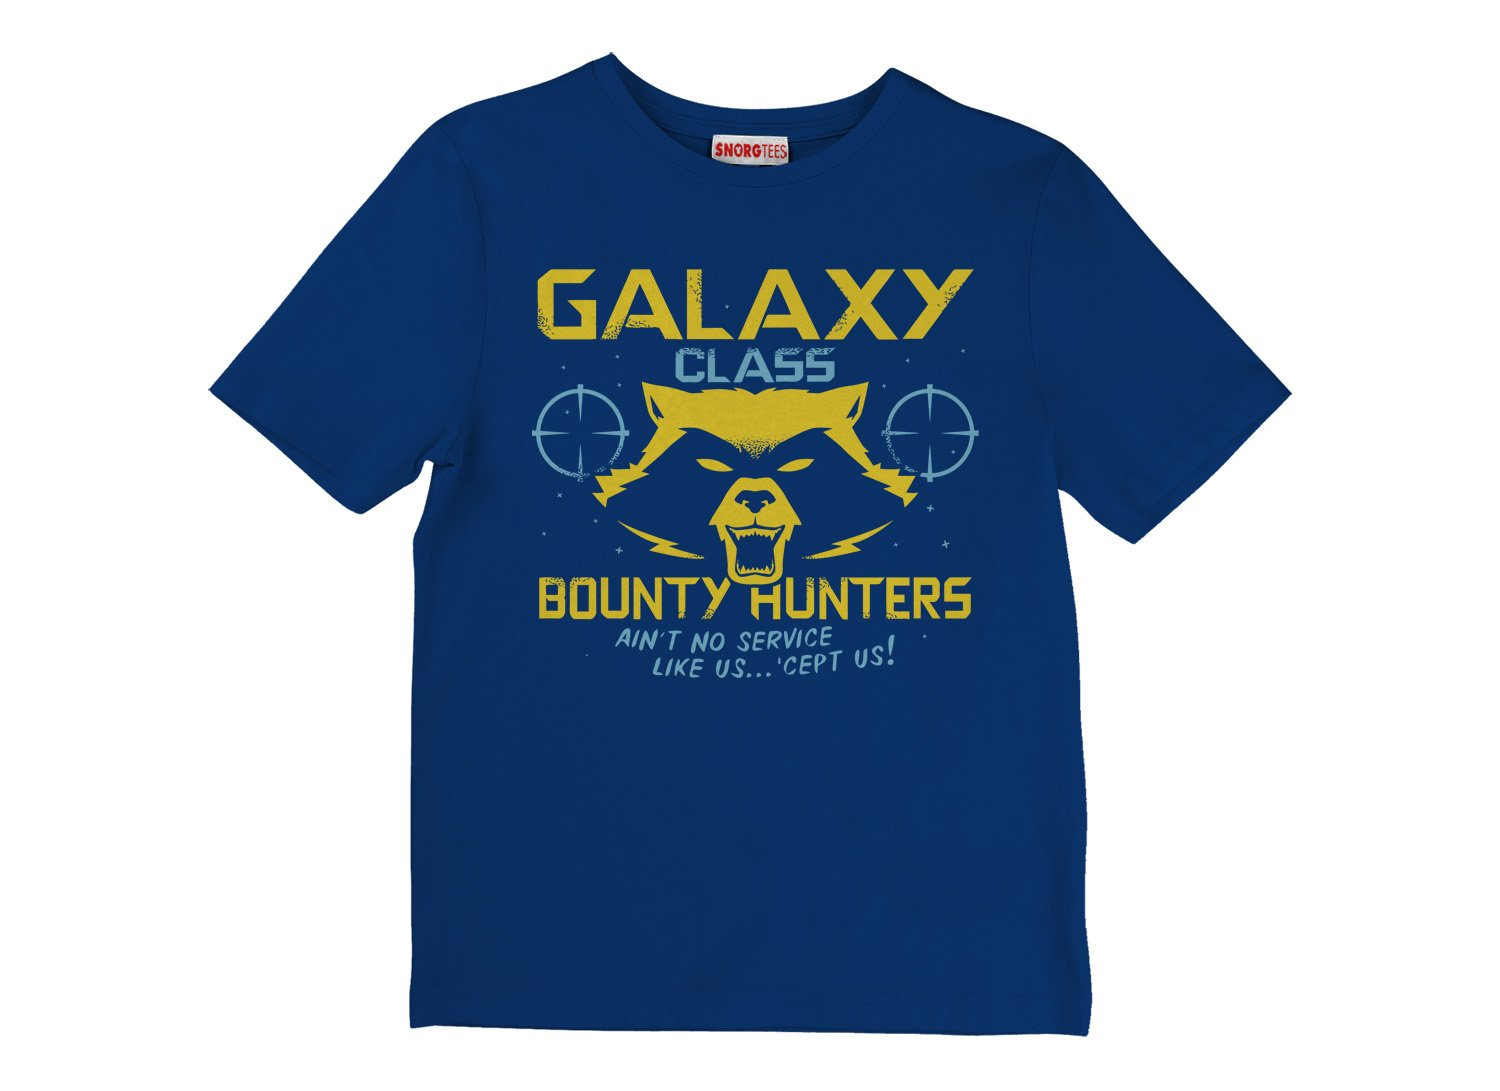 Galaxy Class Bounty Hunters on Kids T-Shirt